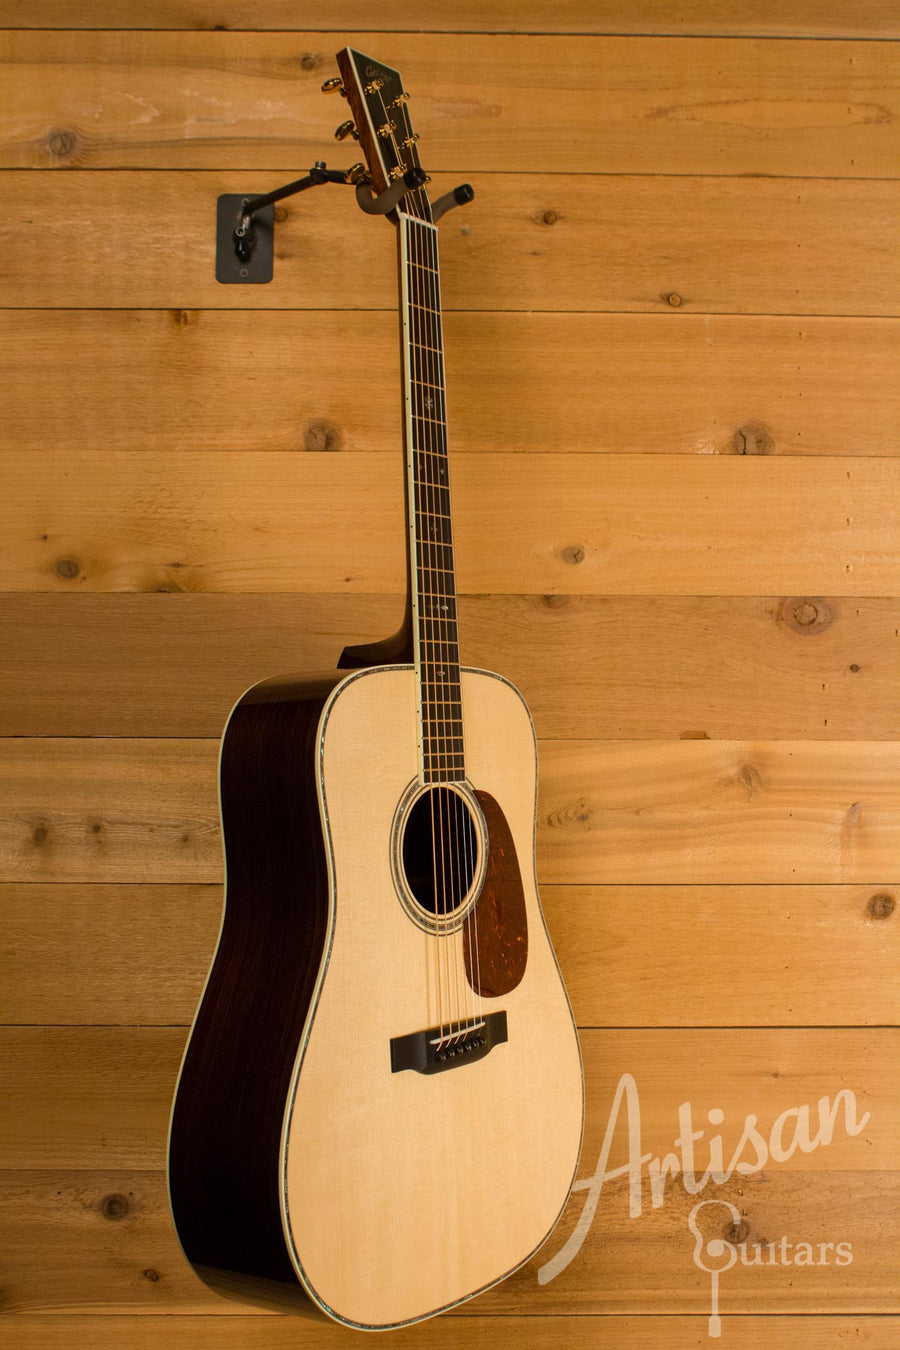 Collings D41 Guitar with Adirondack Spruce Top and Indian Rosewood back and sides  ID-10451